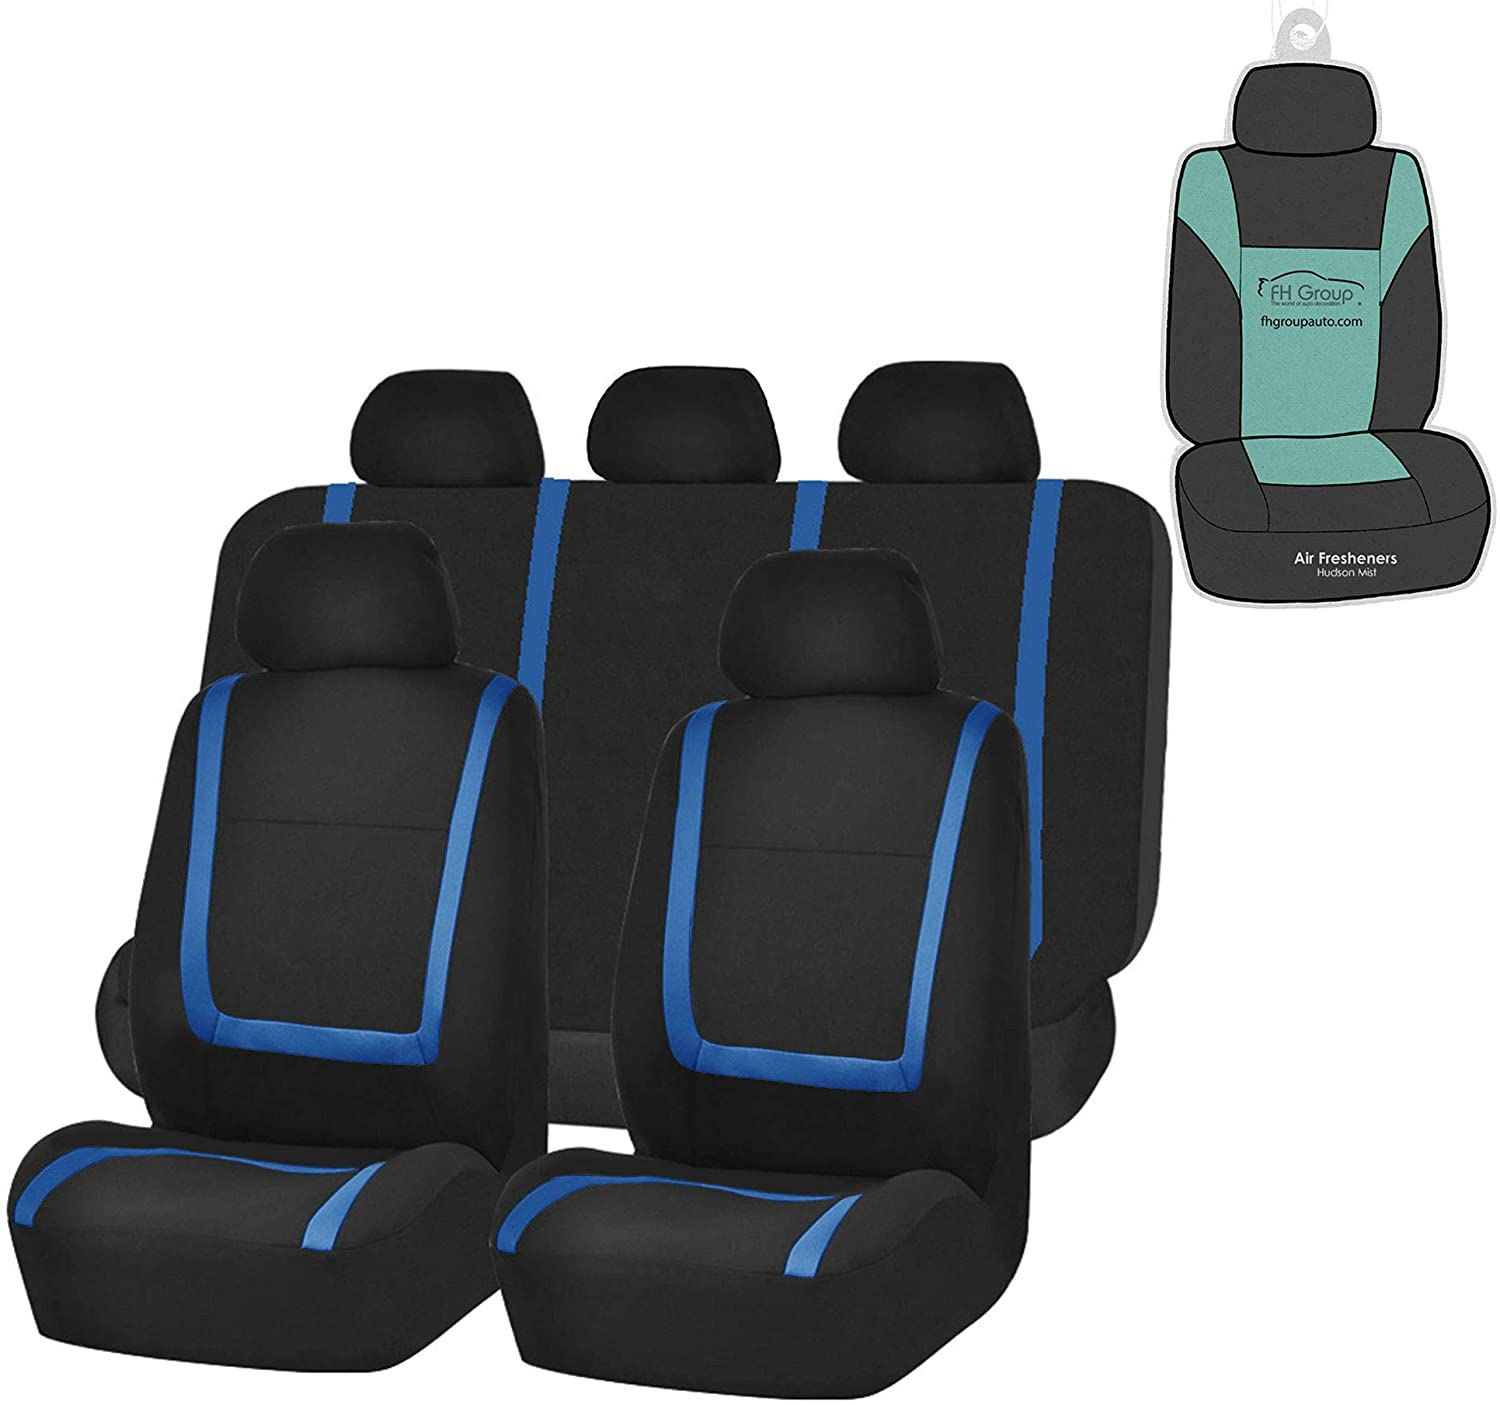 FH Group FB032115 Unique Flat Cloth Full Set Bucket Seat Covers, Airbag Compatible & Split Ready, Black/Blue Color w. Gift-Universal fit for Cars, auto, Trucks, SUV